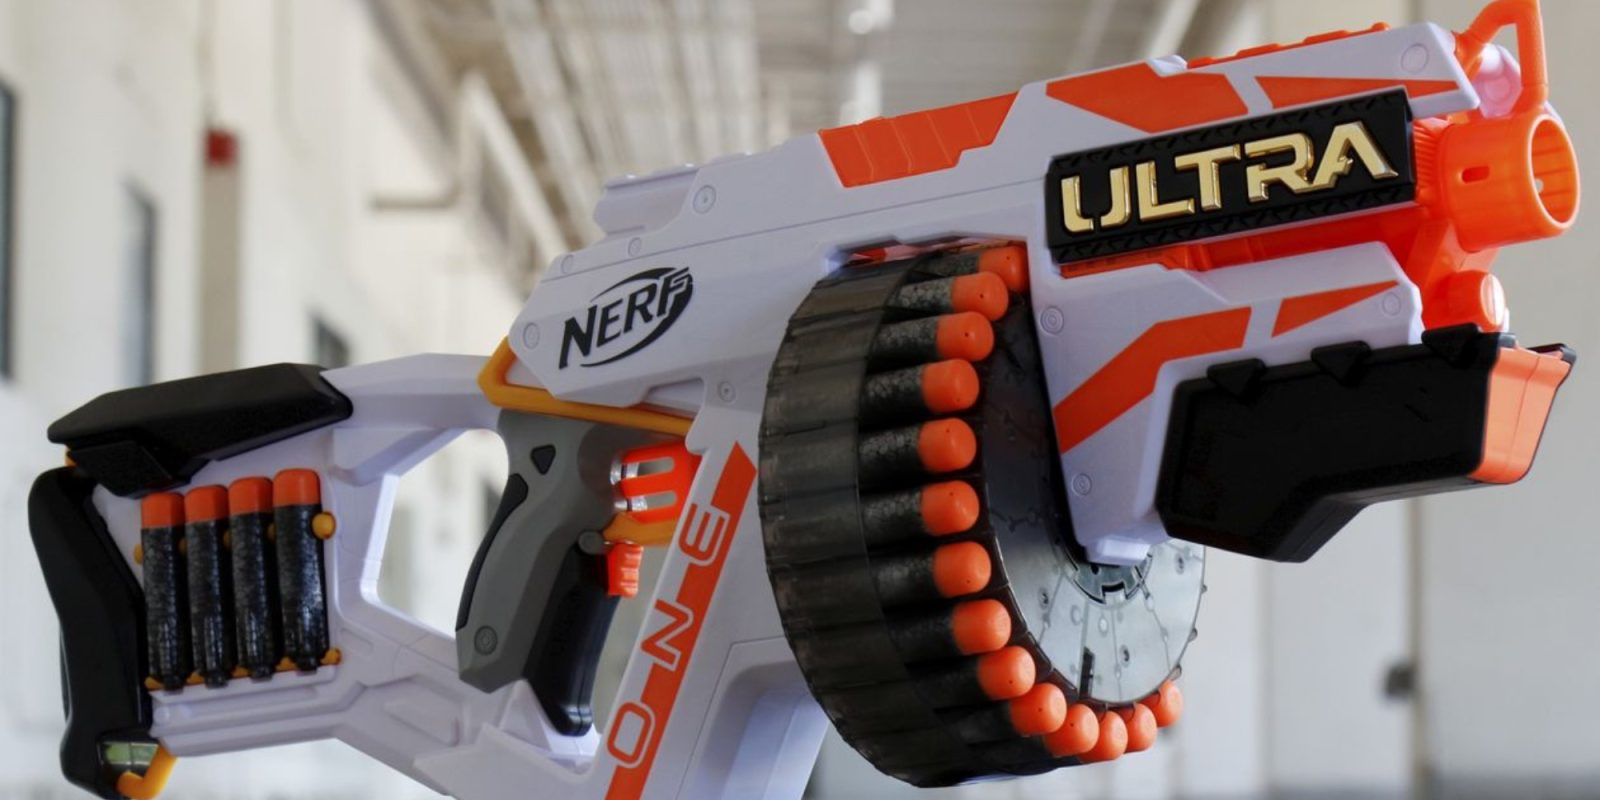 NERF's new Ultra One Blaster can shoot darts up to 120-feet, pre-order now